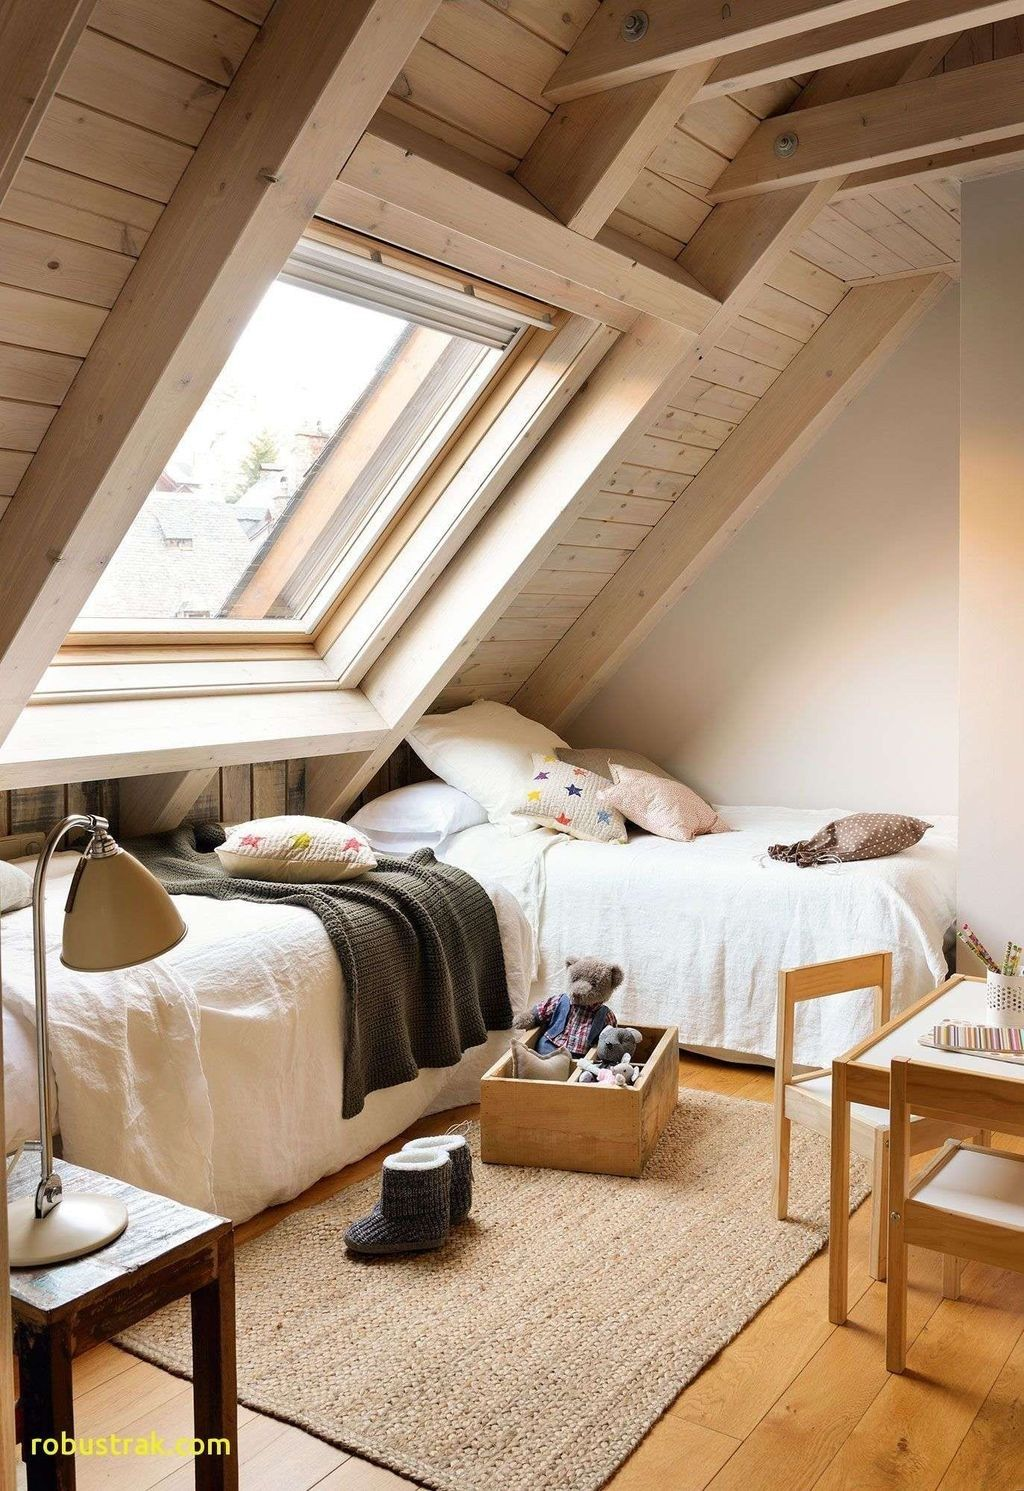 46 Großartige Loft Schlafzimmer Design Ideen Small Loft Bedroom Attic Bedroom Small Attic Bedroom Designs